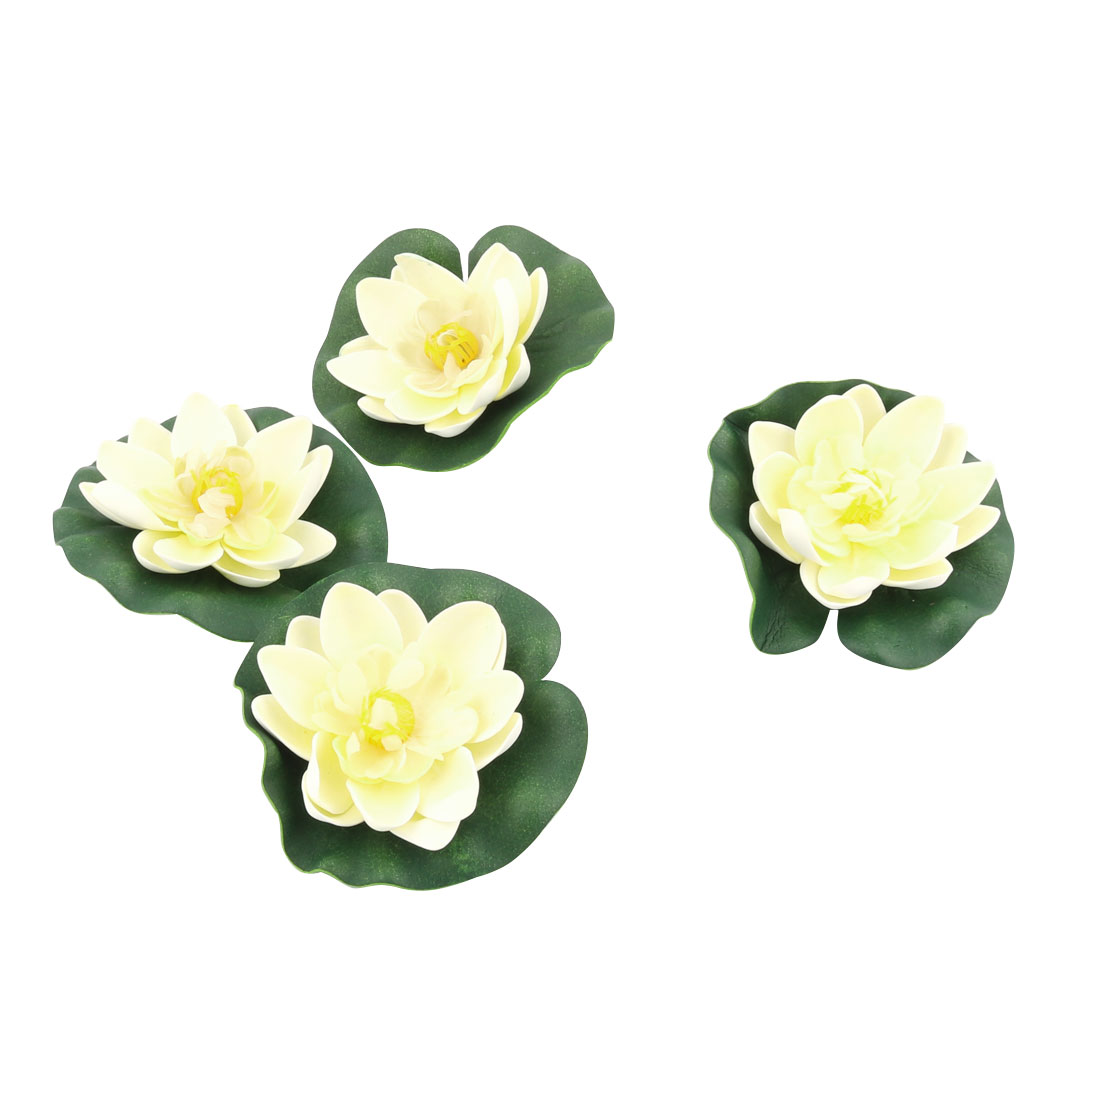 Home Restaurant Fish Tank Aquarium Simulation Lotus Decor 10cm Dia. 4pcs